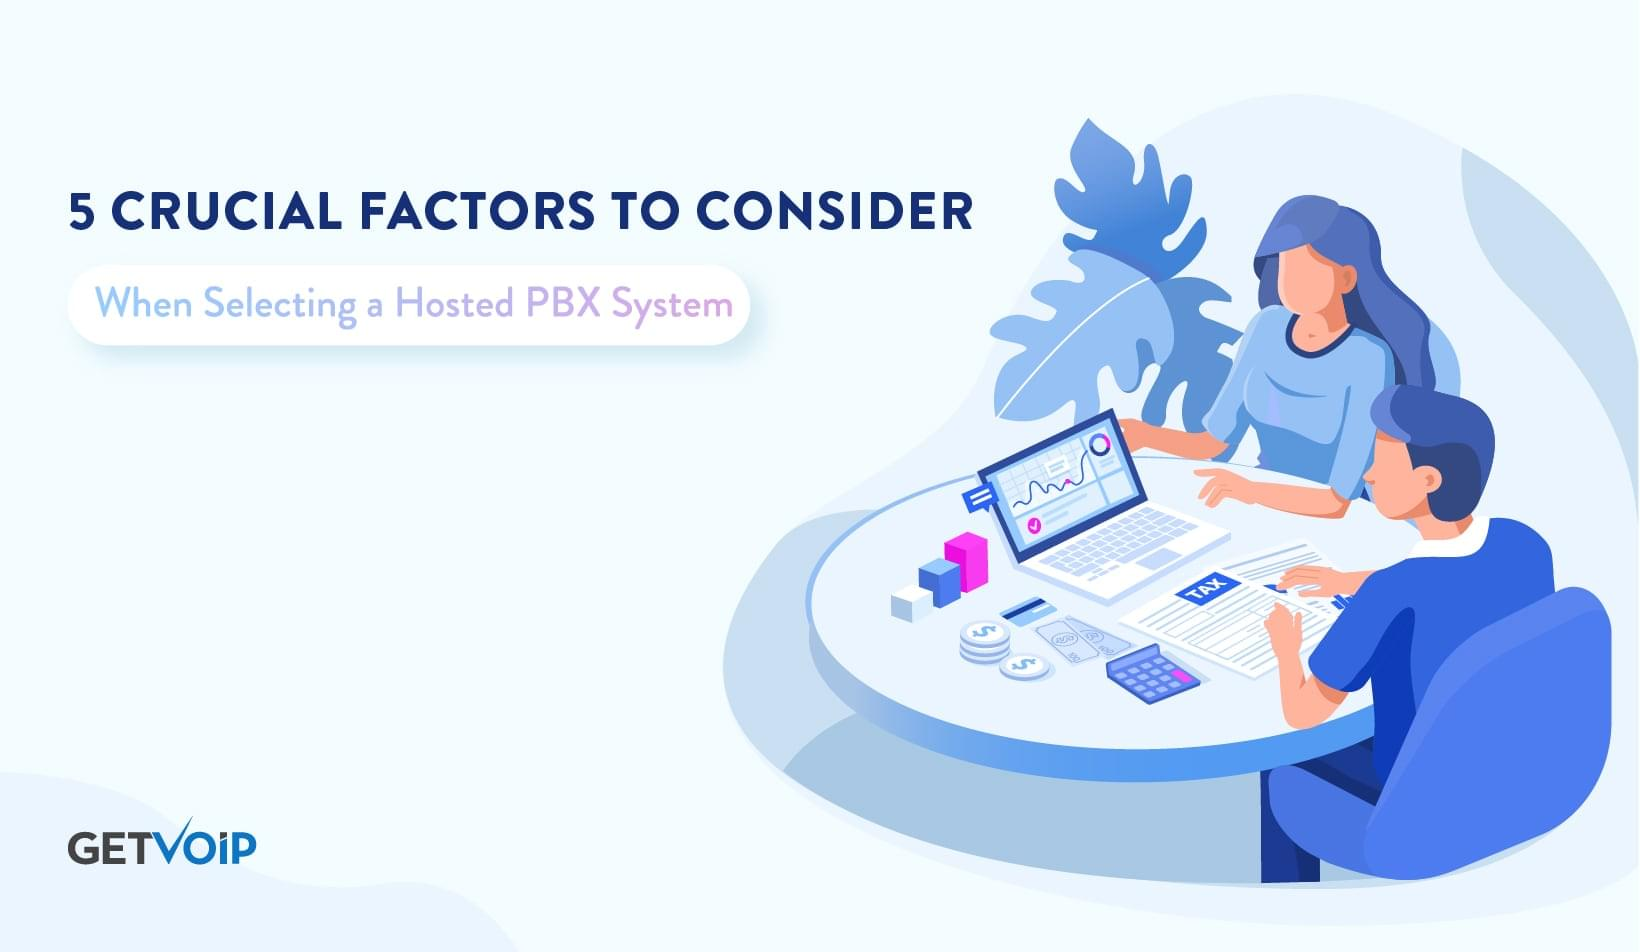 5 Crucial Factors To Consider When Selecting a Hosted PBX System